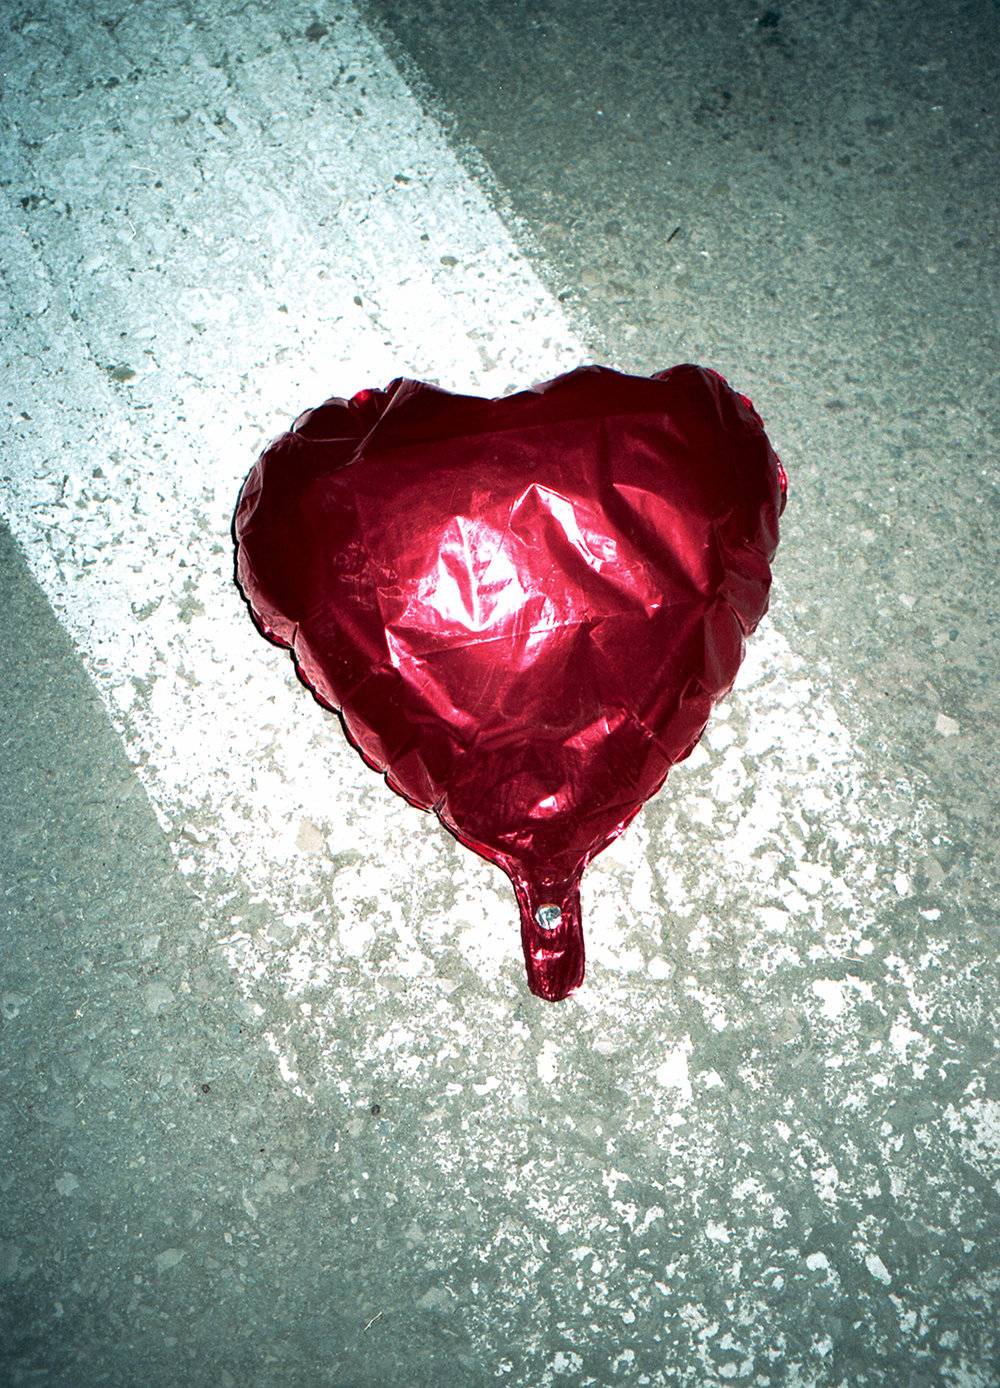 Heart | mjui | portra160 | Or Sachs